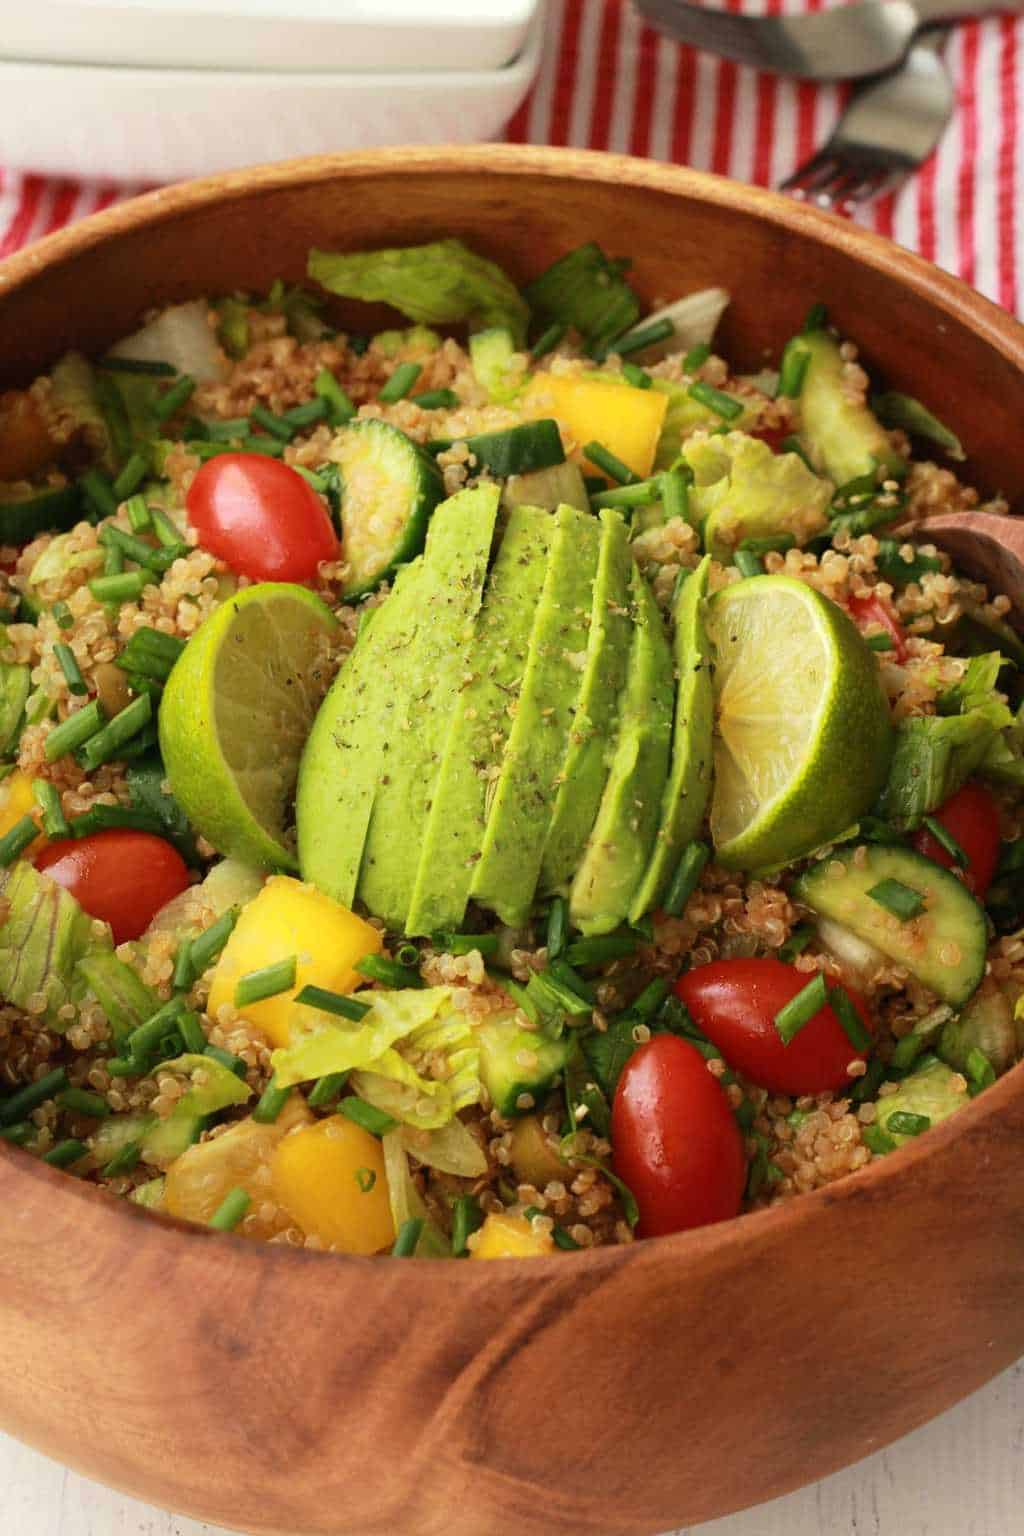 Fabulously healthy Quinoa Salad with Sesame Soy Dressing. Vegan and Gluten-free! #vegan #lovingitvegan #glutenfree #quinoasalad #entree